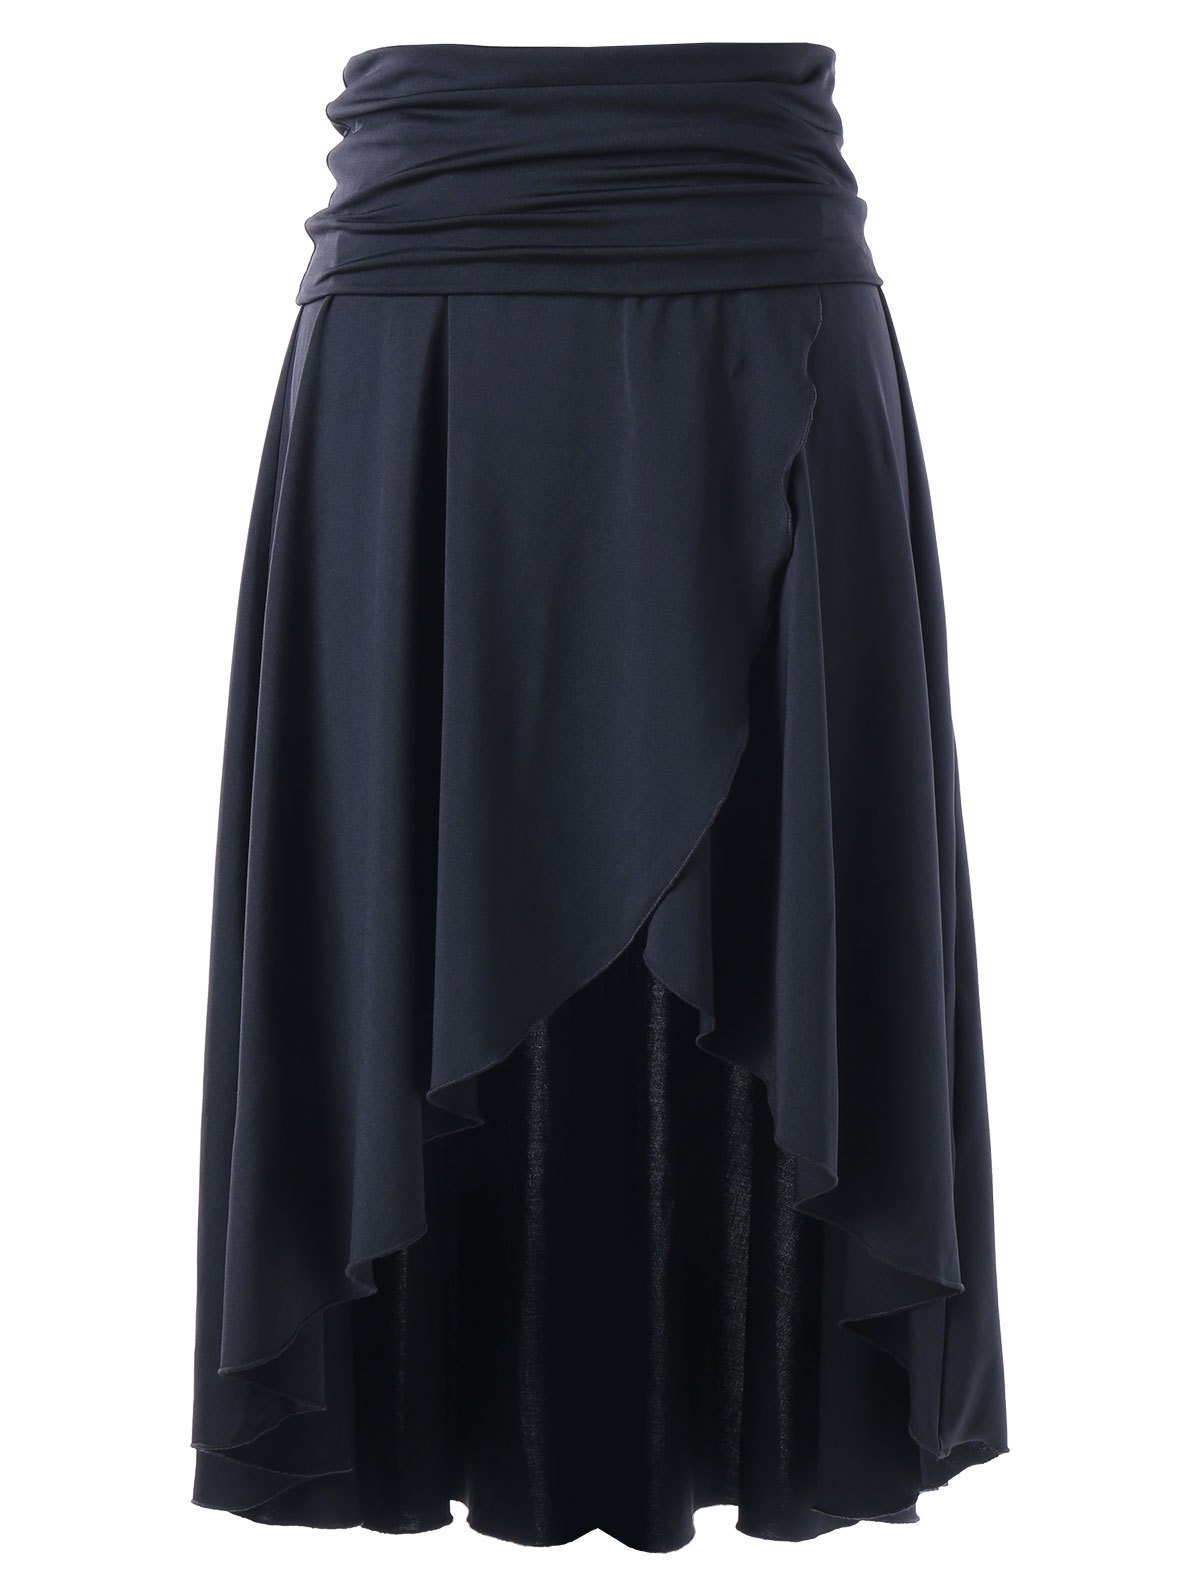 Multi-wear Asymmetrical High Low Skirt - BLACK XL